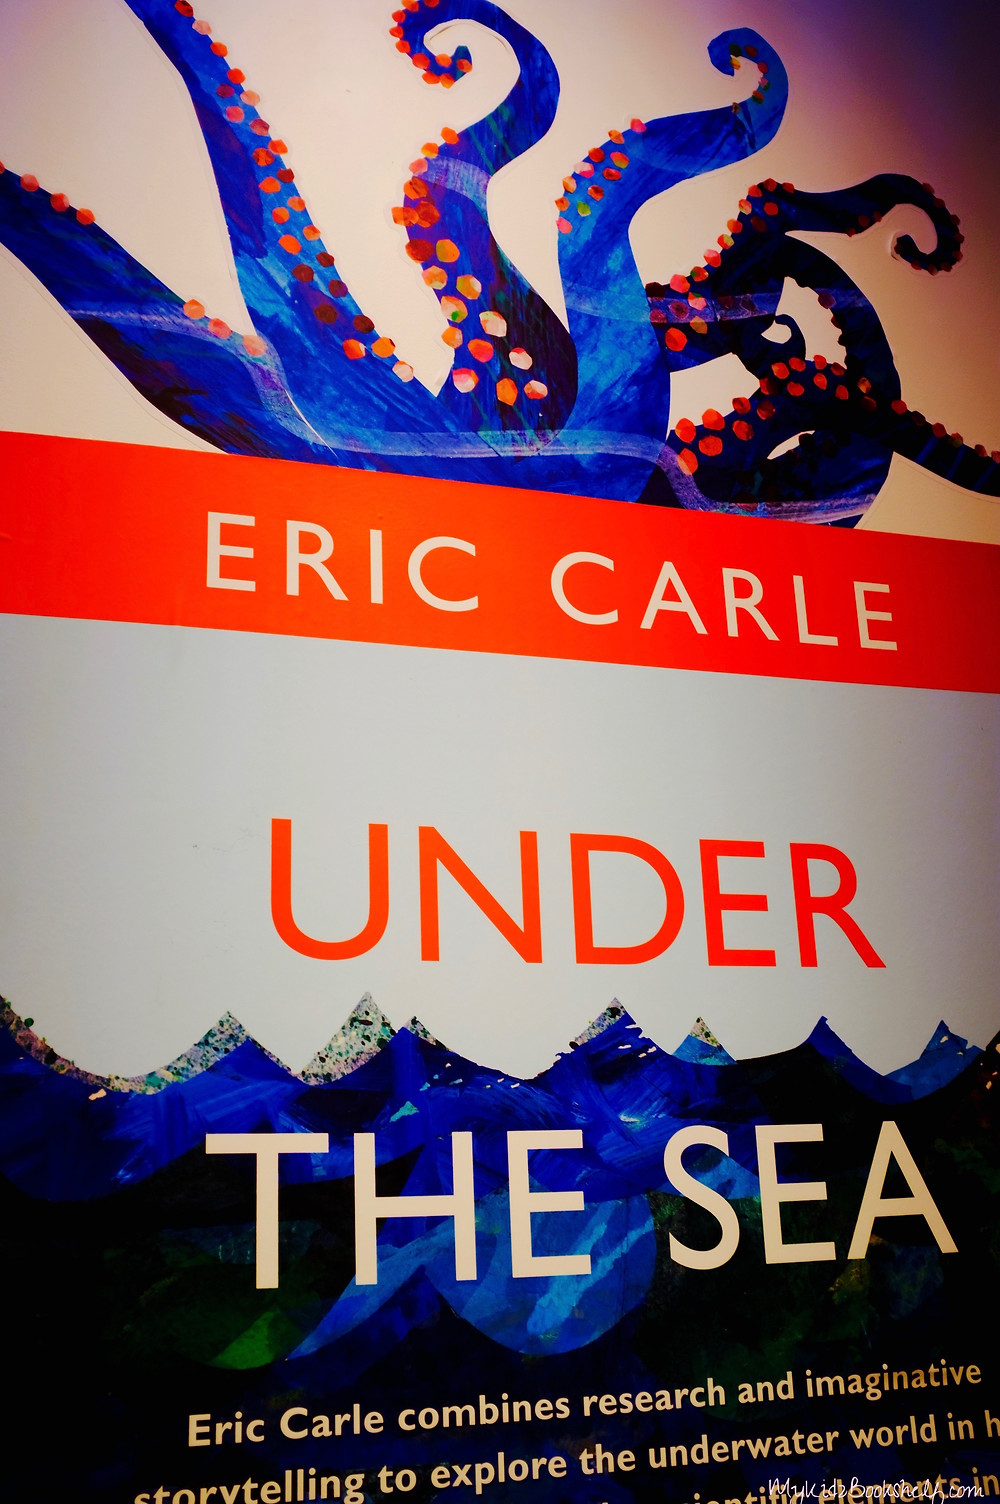 Eric-Carle-Under-the-Sea-Exhbit-mural The Eric Carle Museum of Picture Book Art